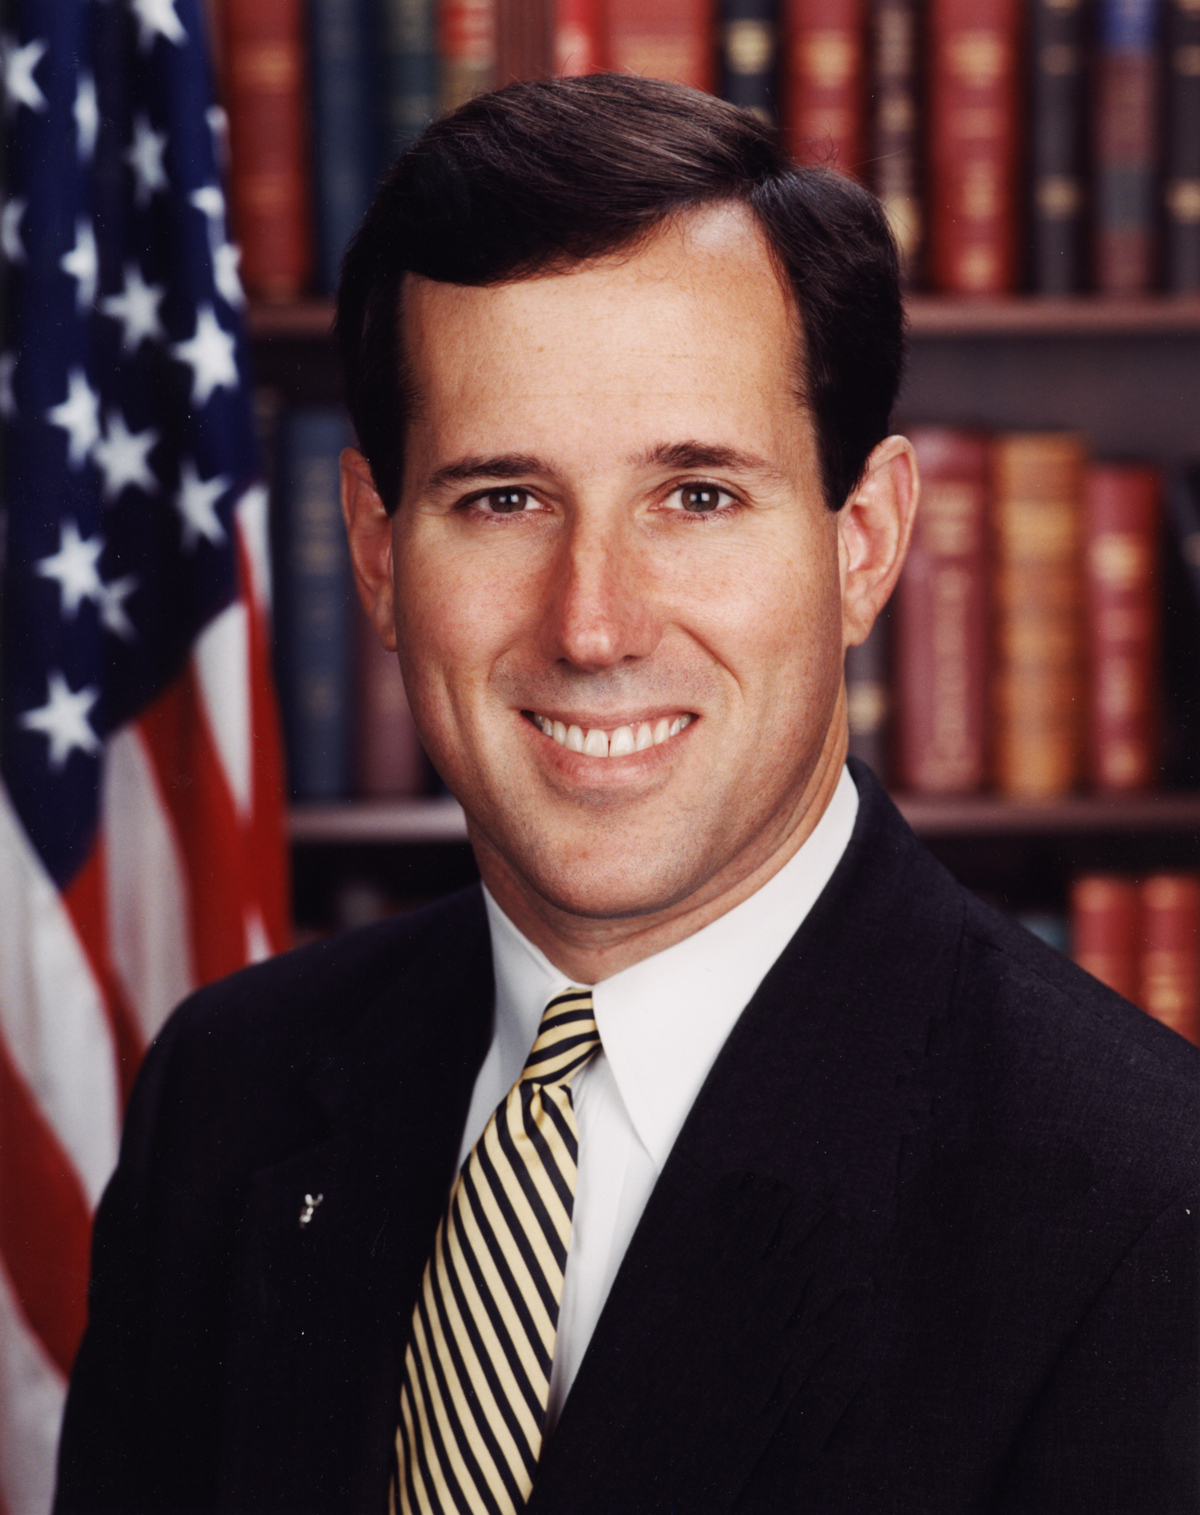 Rick_Santorum_official_photo